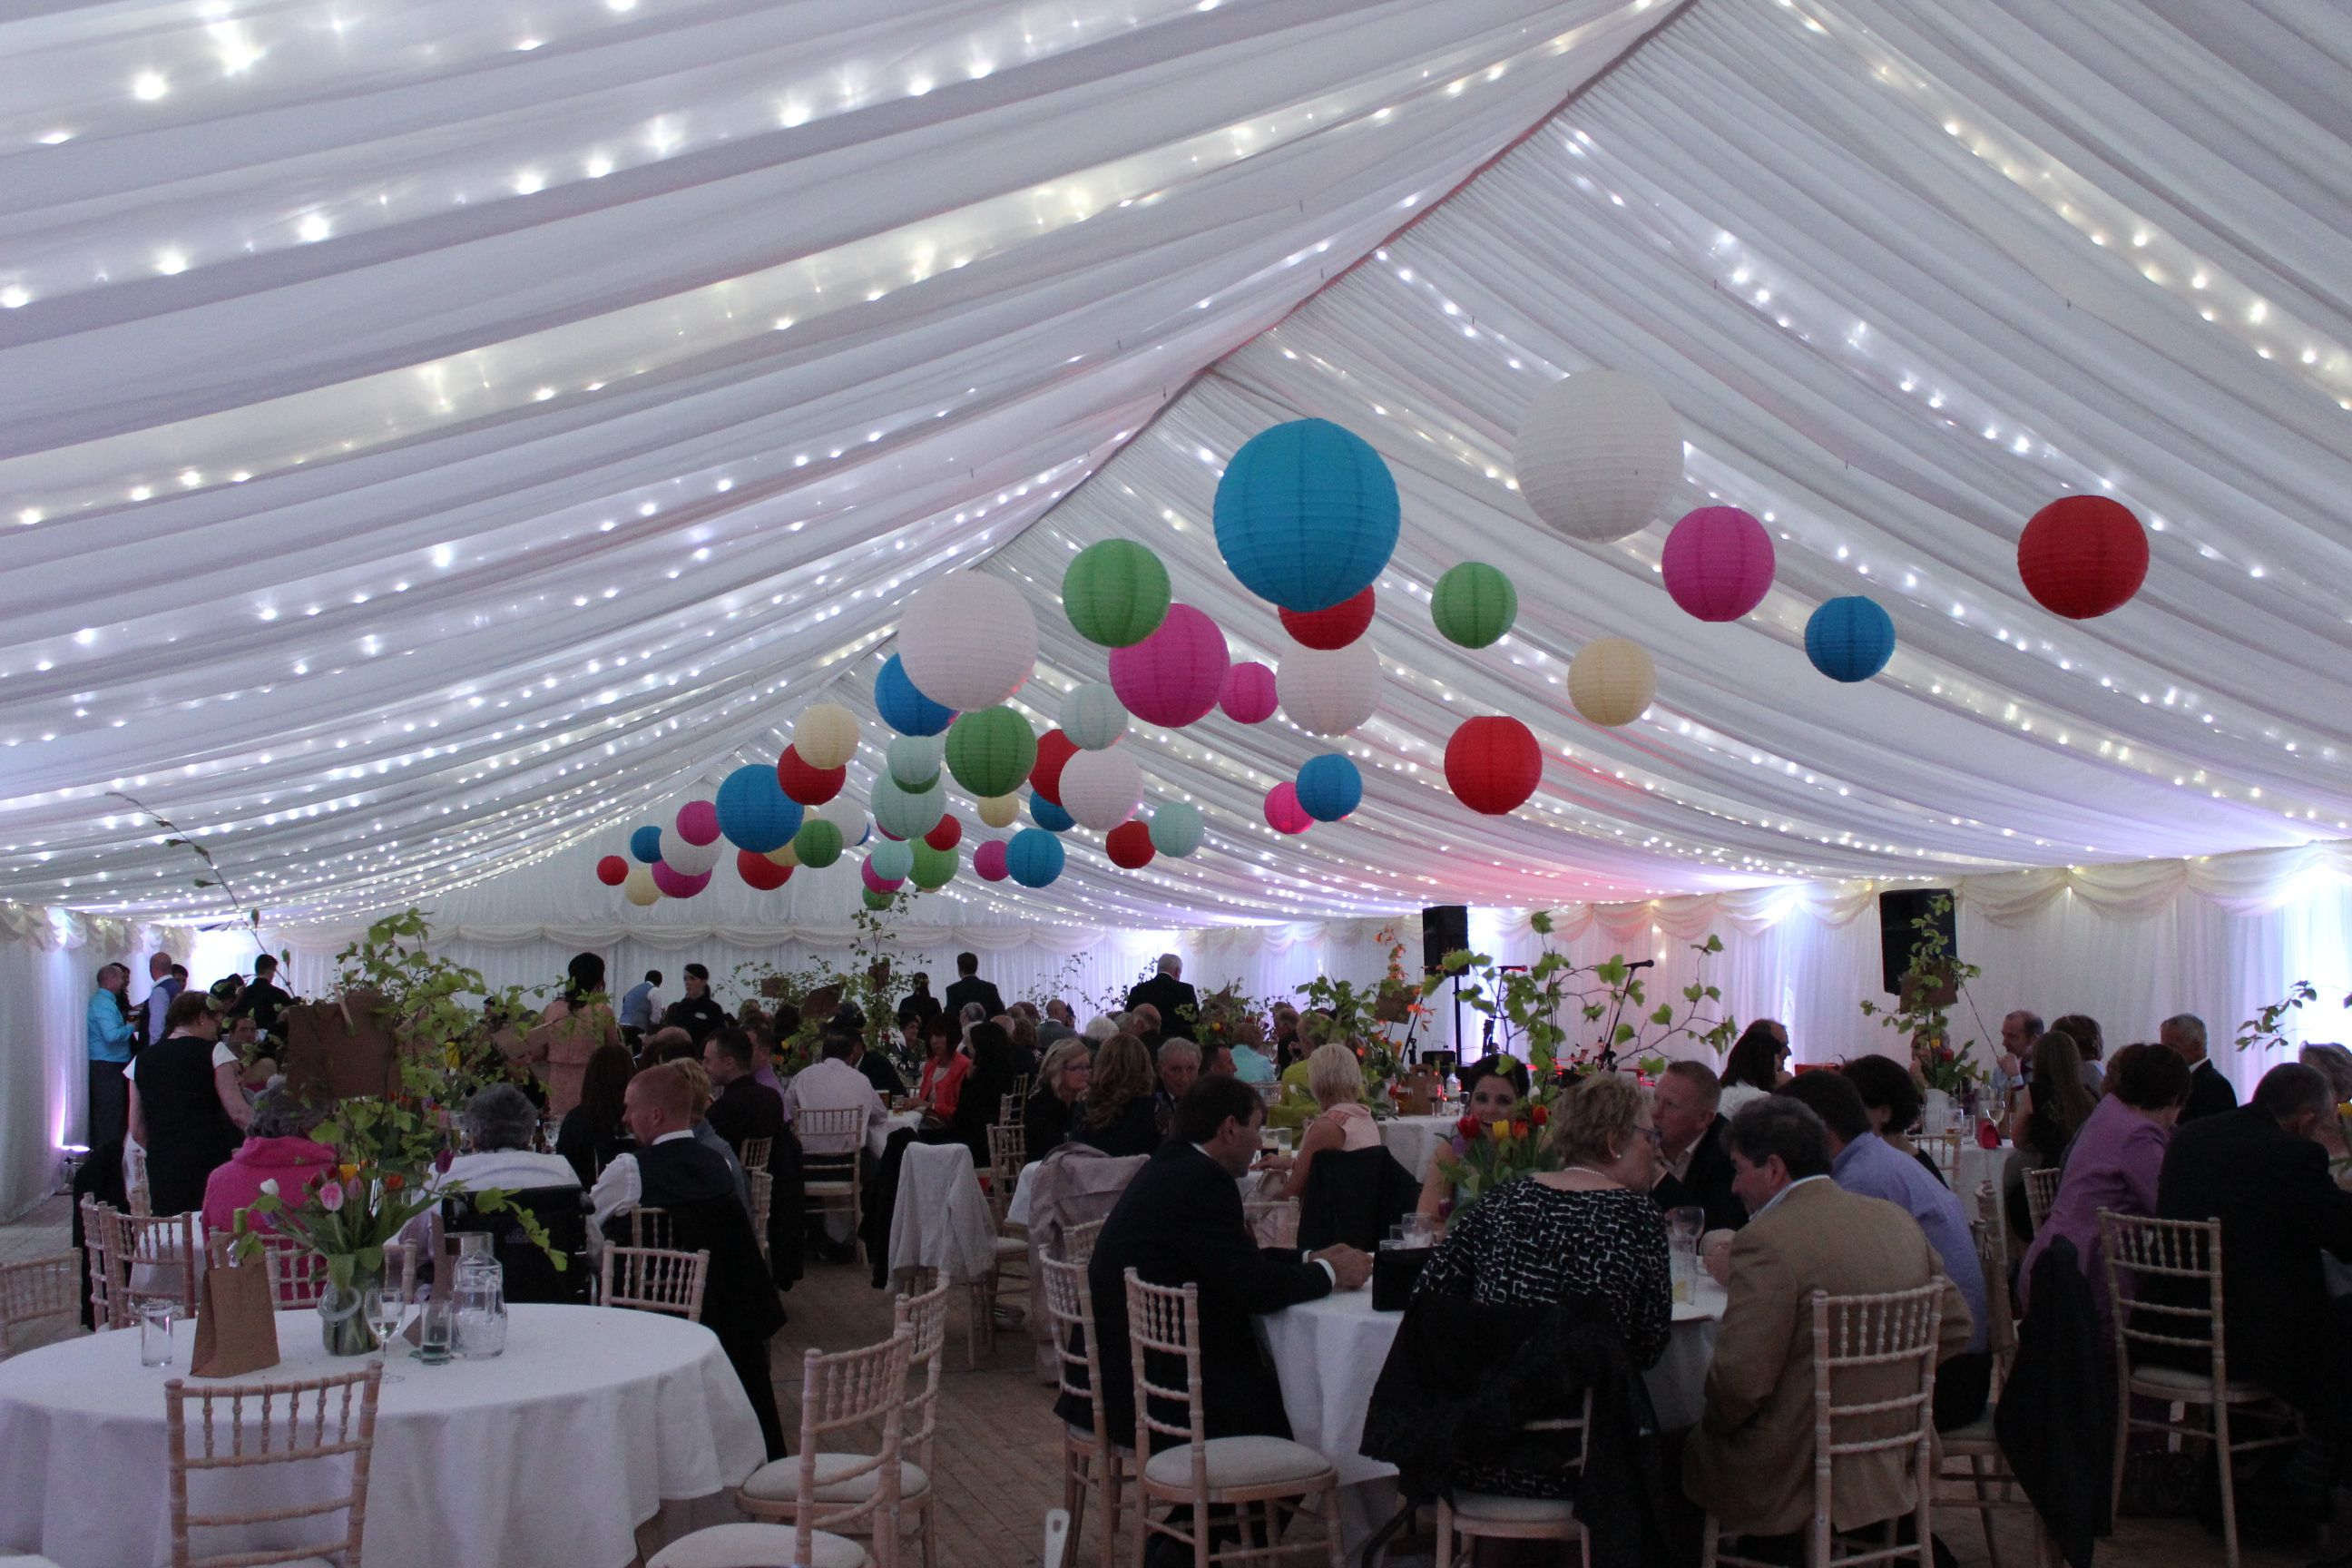 Colourful paper lanterns and fairy lights in the ceiling of the Marquee. Designed to 'Welcome Spring'